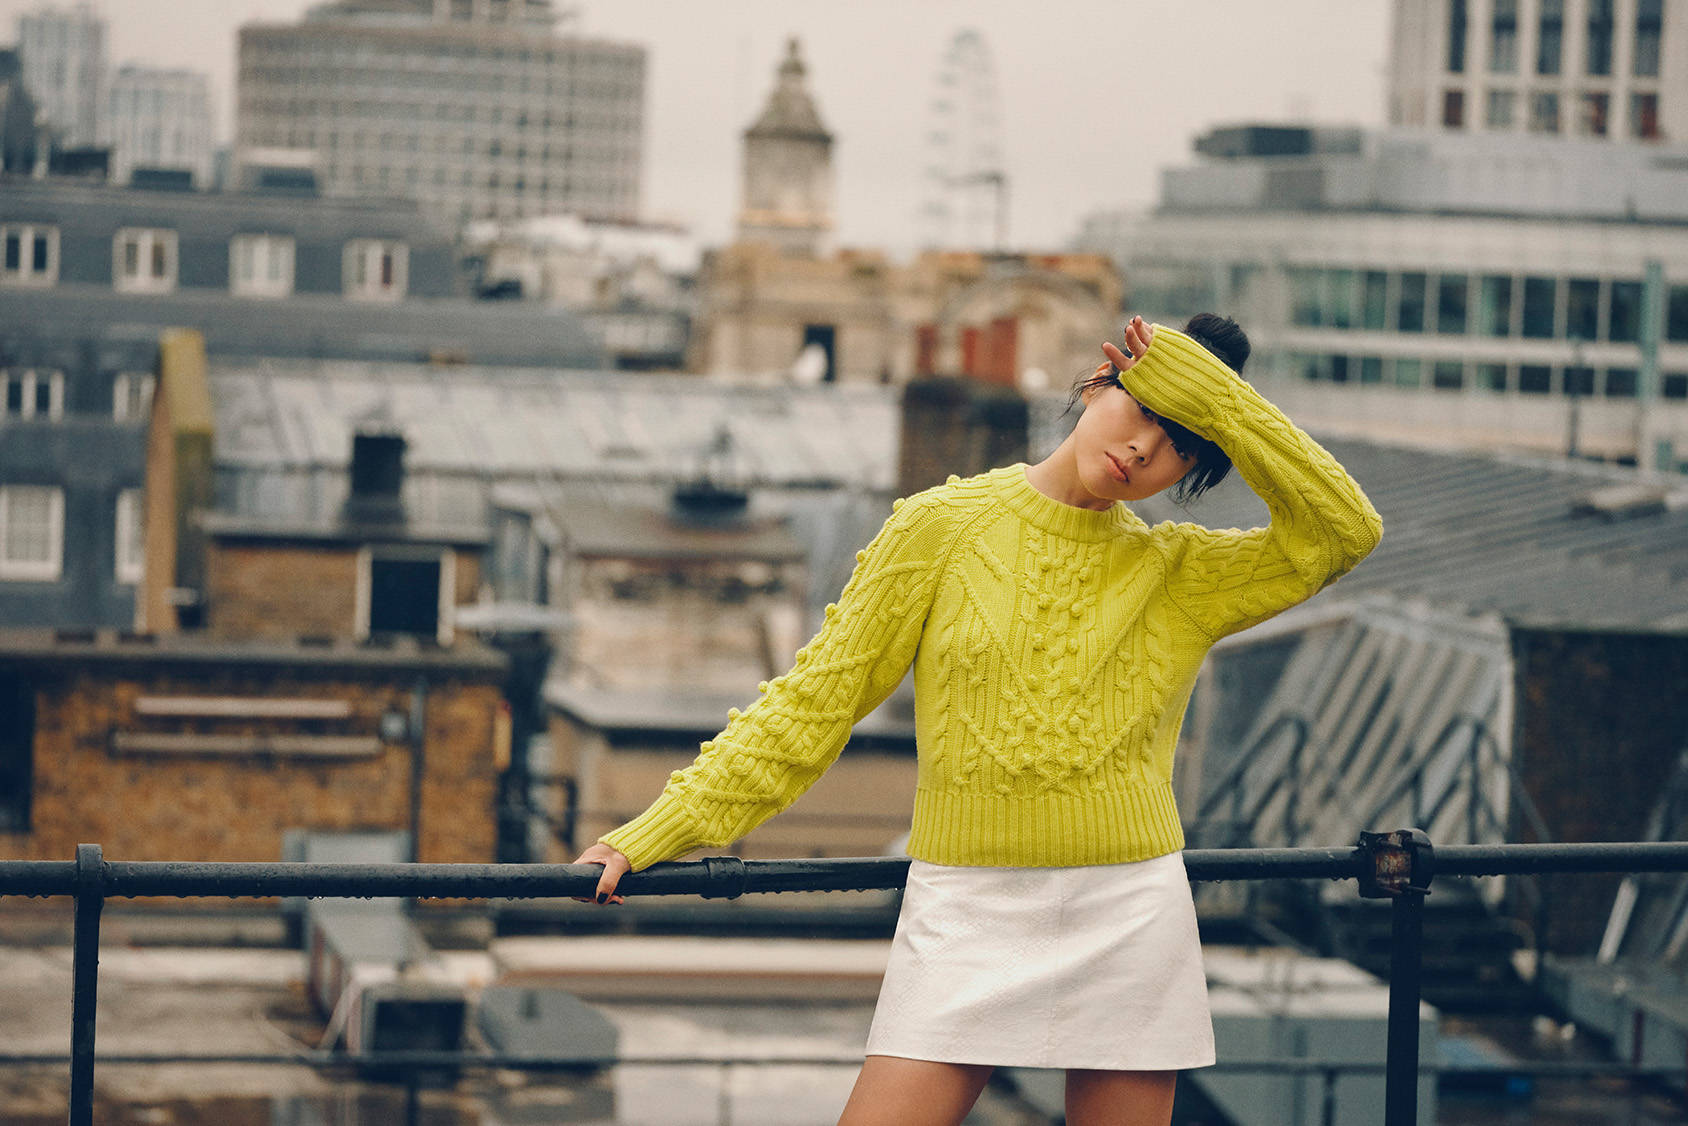 London Calling with Susie Bubble